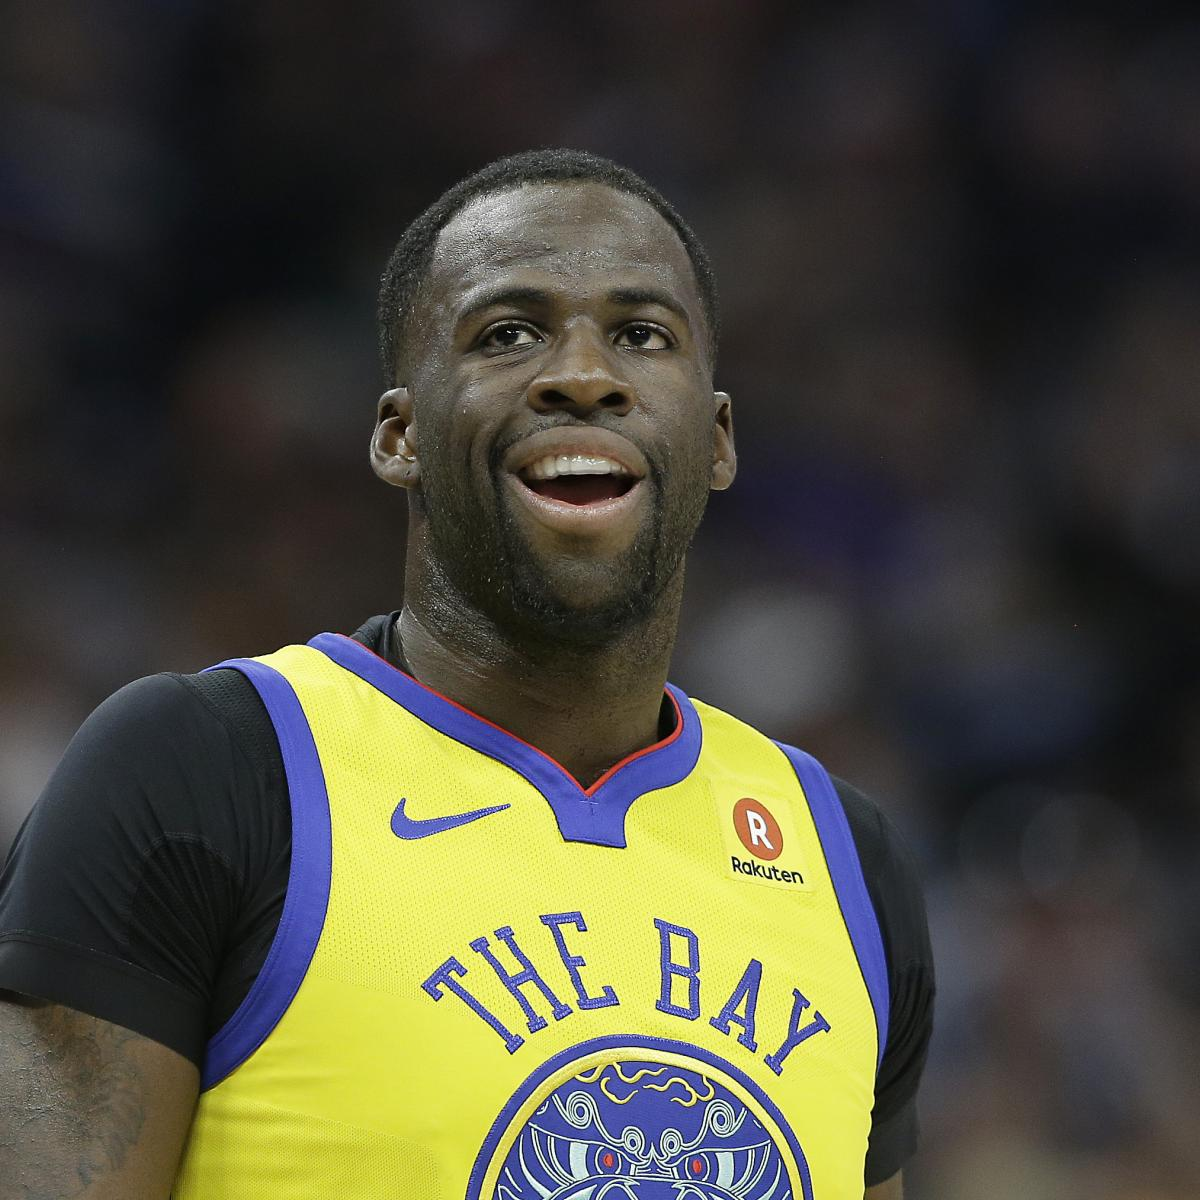 Houston Rockets Where To Watch The Upcoming Match Espn: Draymond Green On Warriors' Matchup With Rockets: 'It's